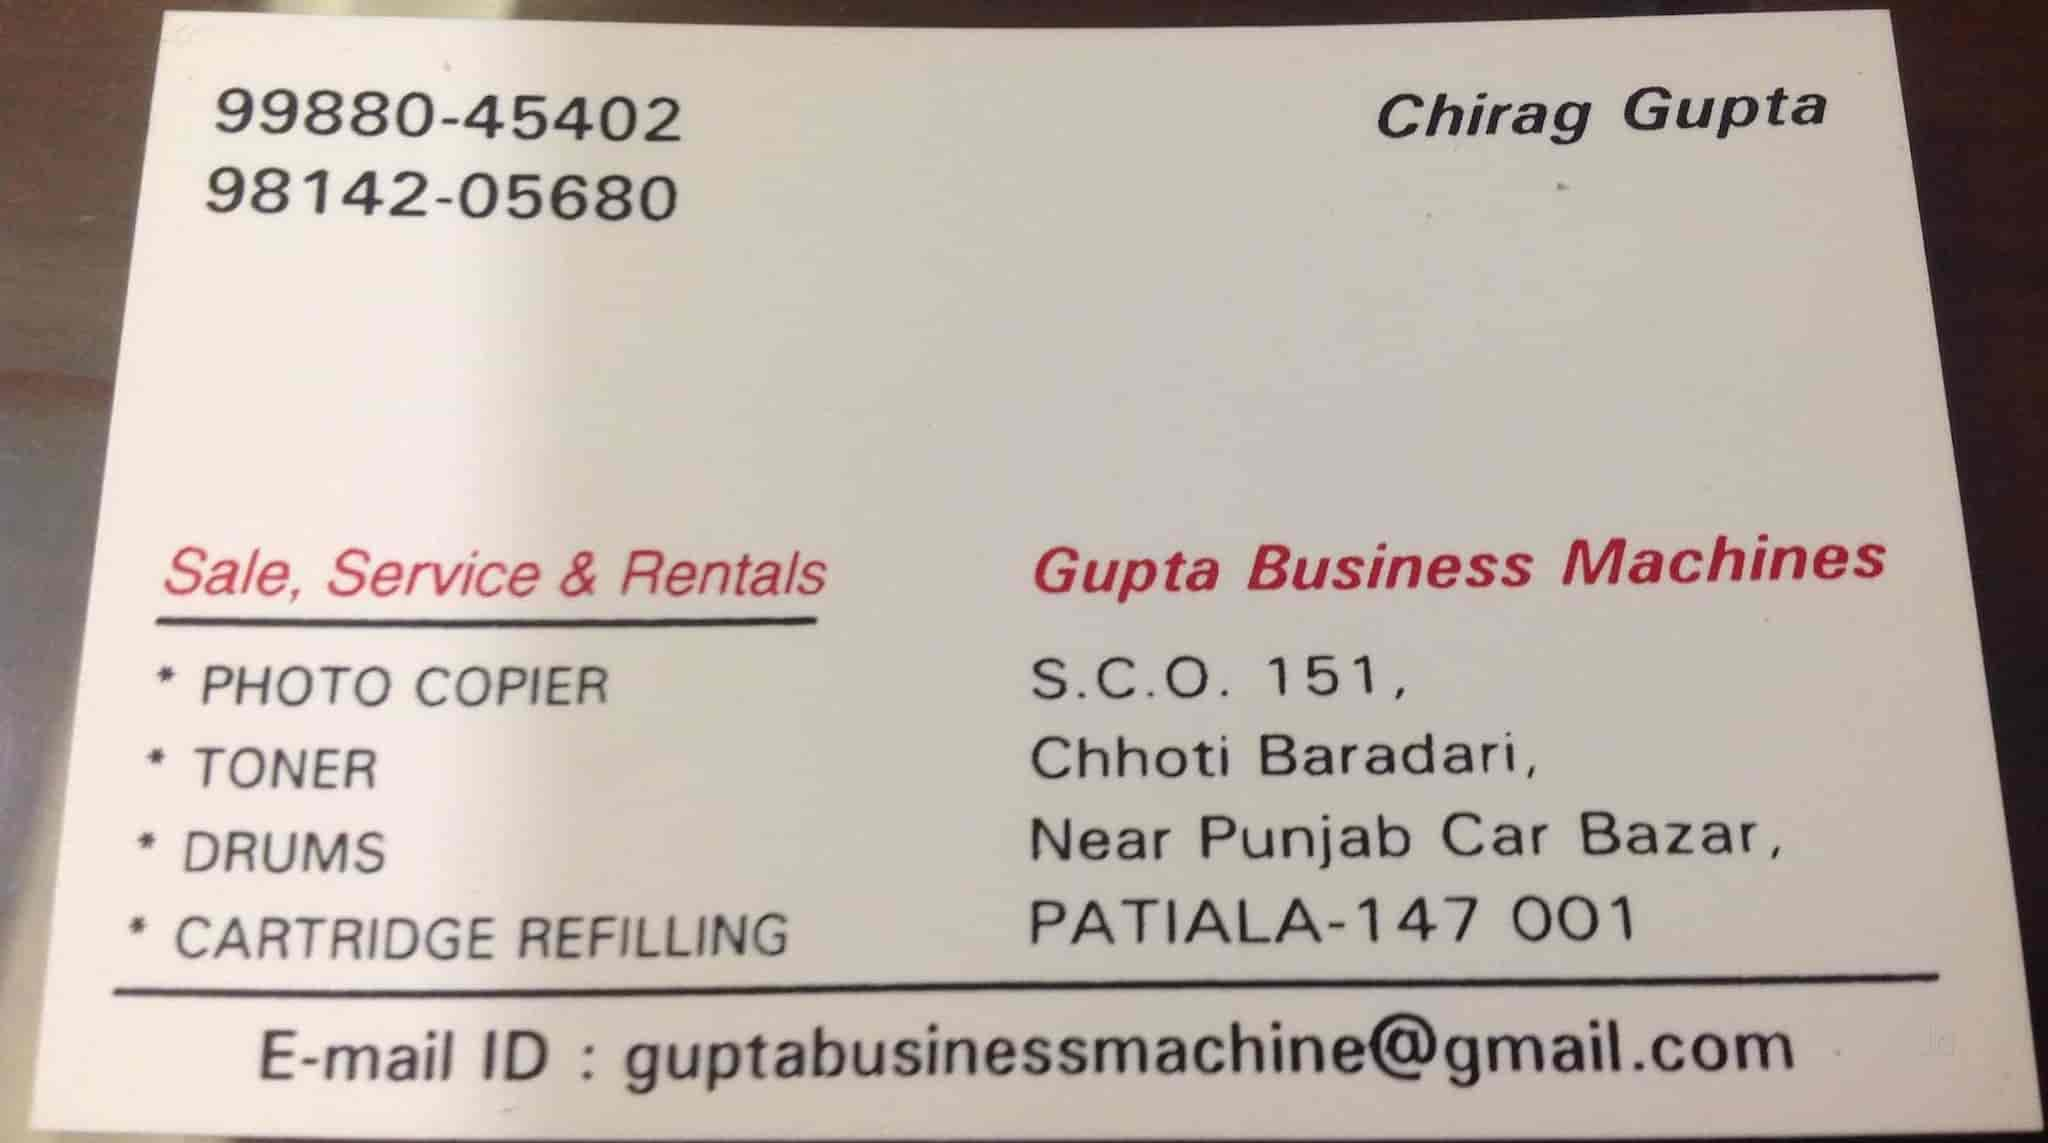 Gupta business machine photos patiala pictures images gallery visiting card gupta business machine photos patiala digital photocopier dealers canon reheart